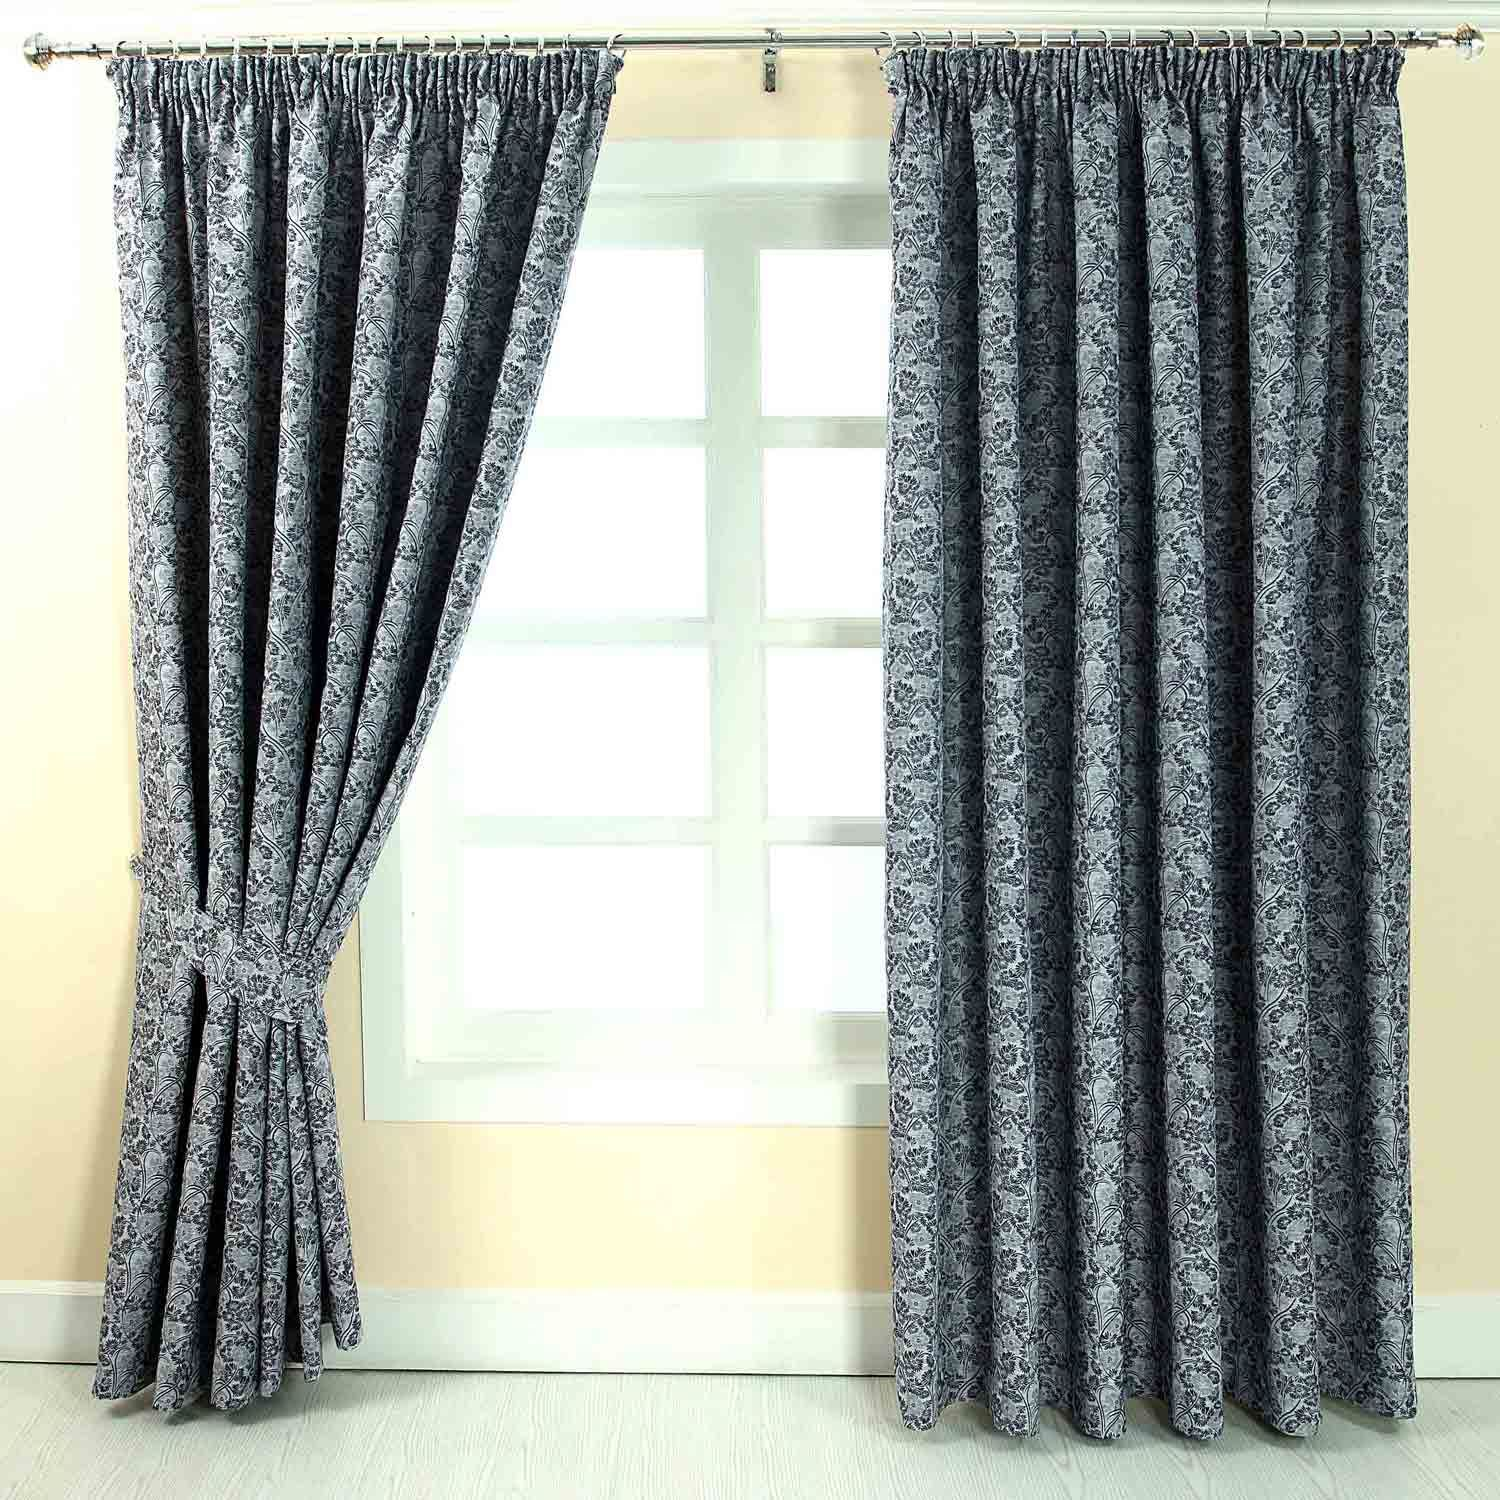 Grey Blue Curtains Pencil Pleat Jacquard Vintage Floral Curtains Fully Lined